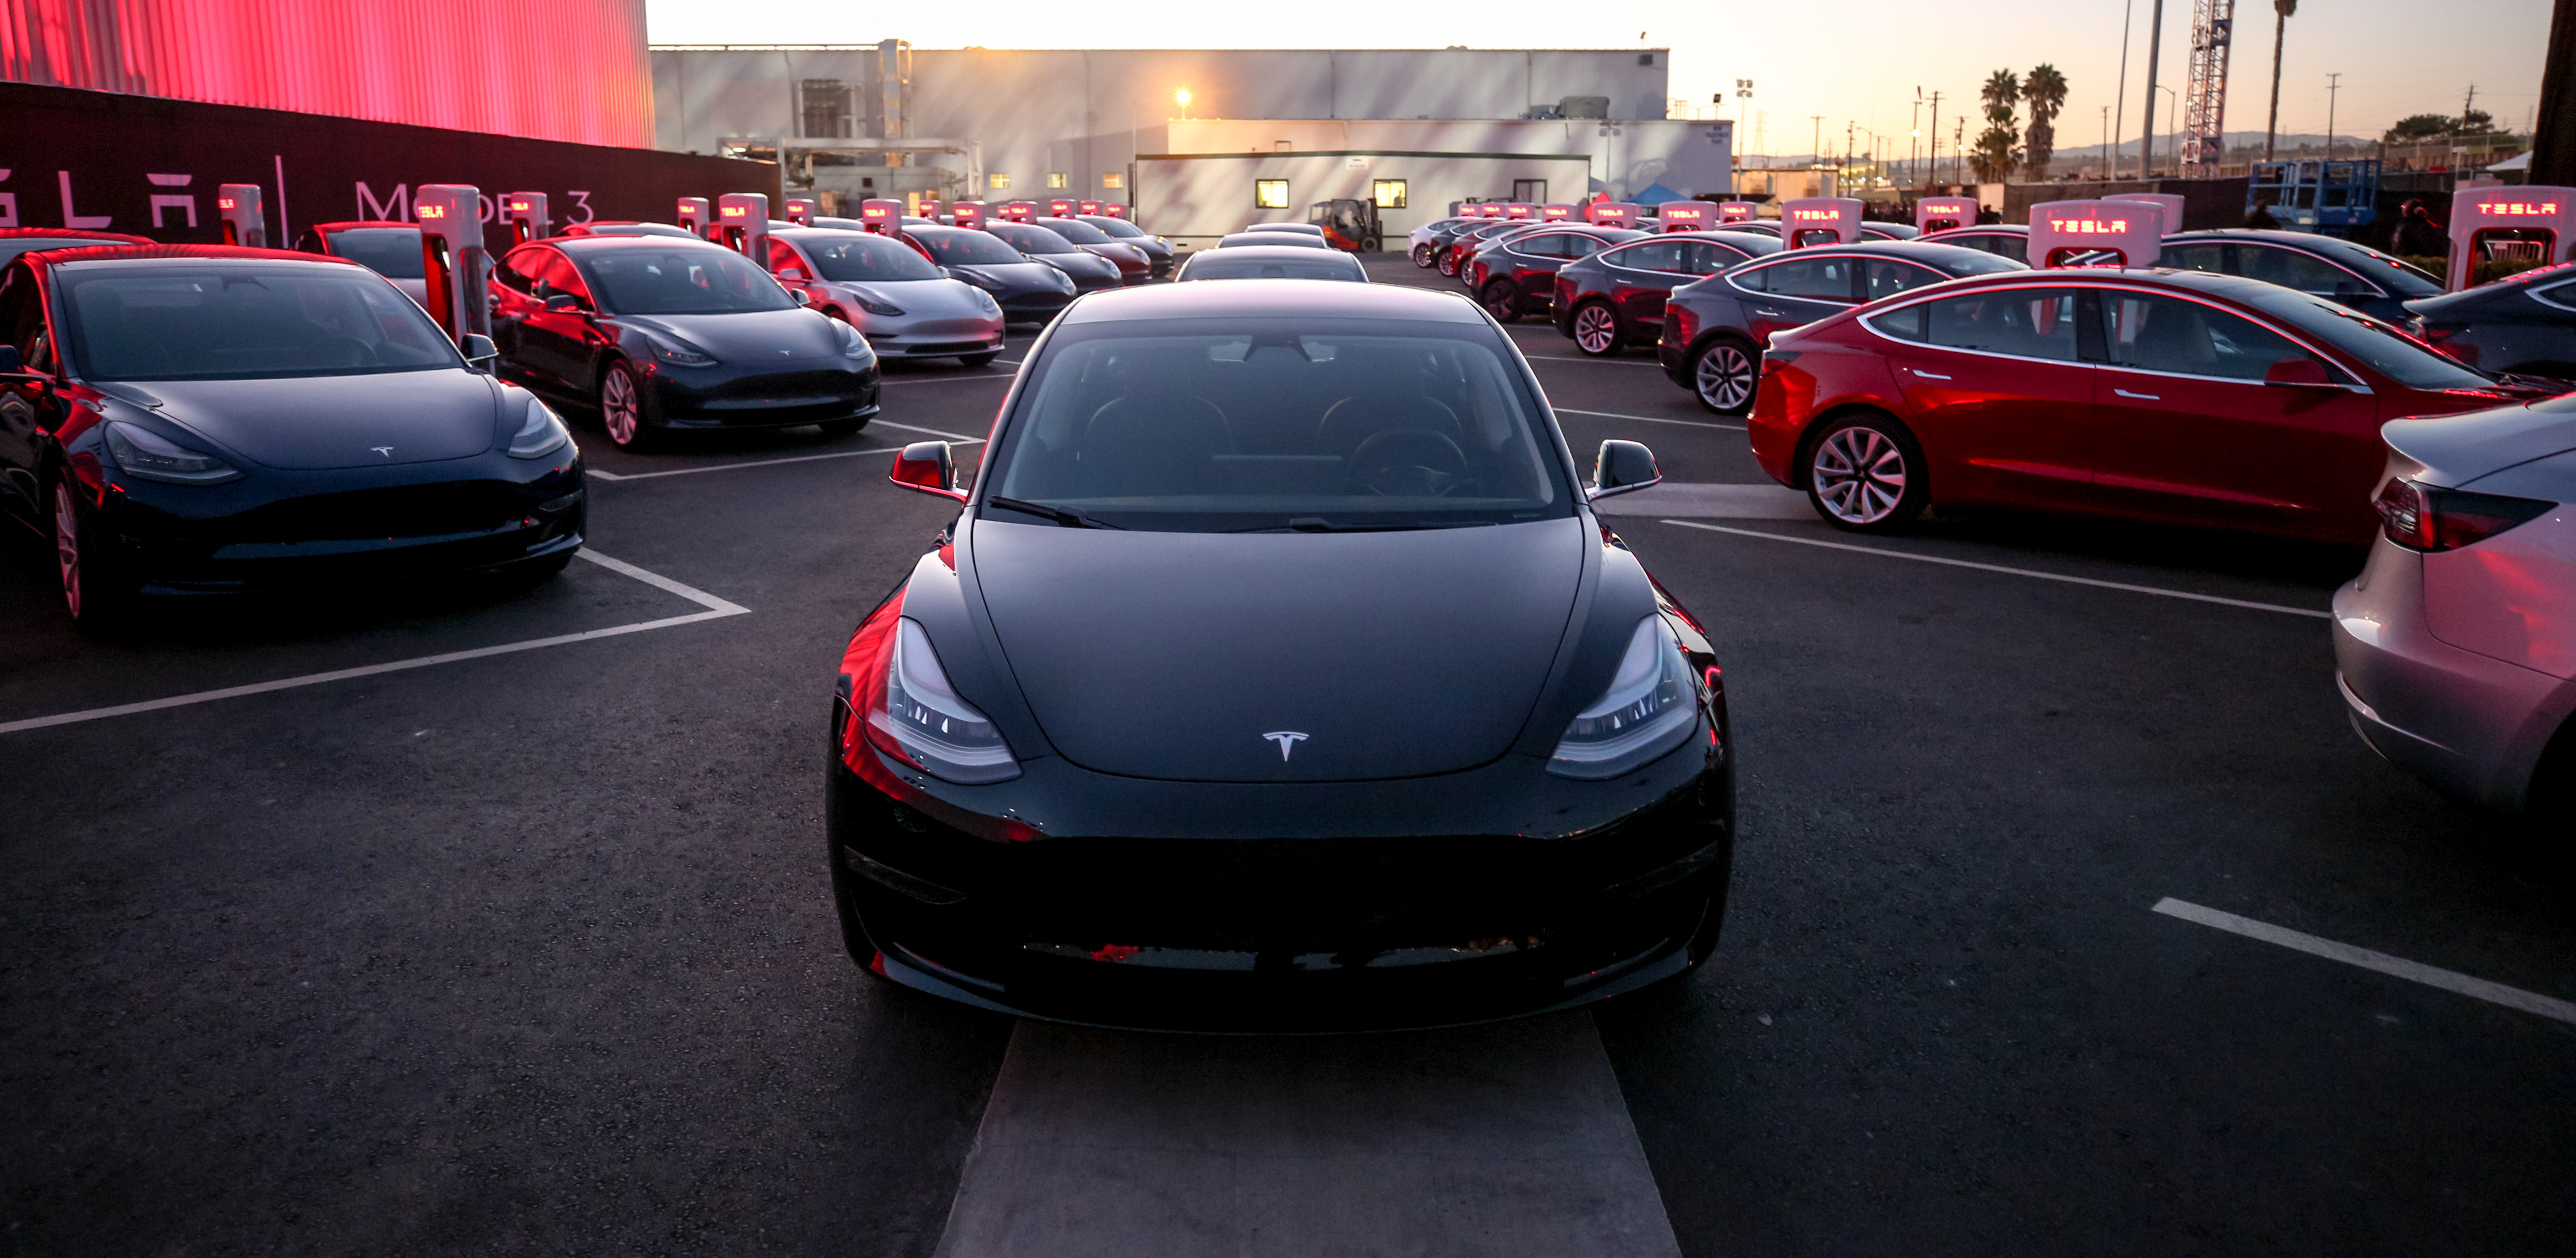 The Model 3 at Tesla's hand over event July 28, 2017 at its factory in Fremont, Calif.